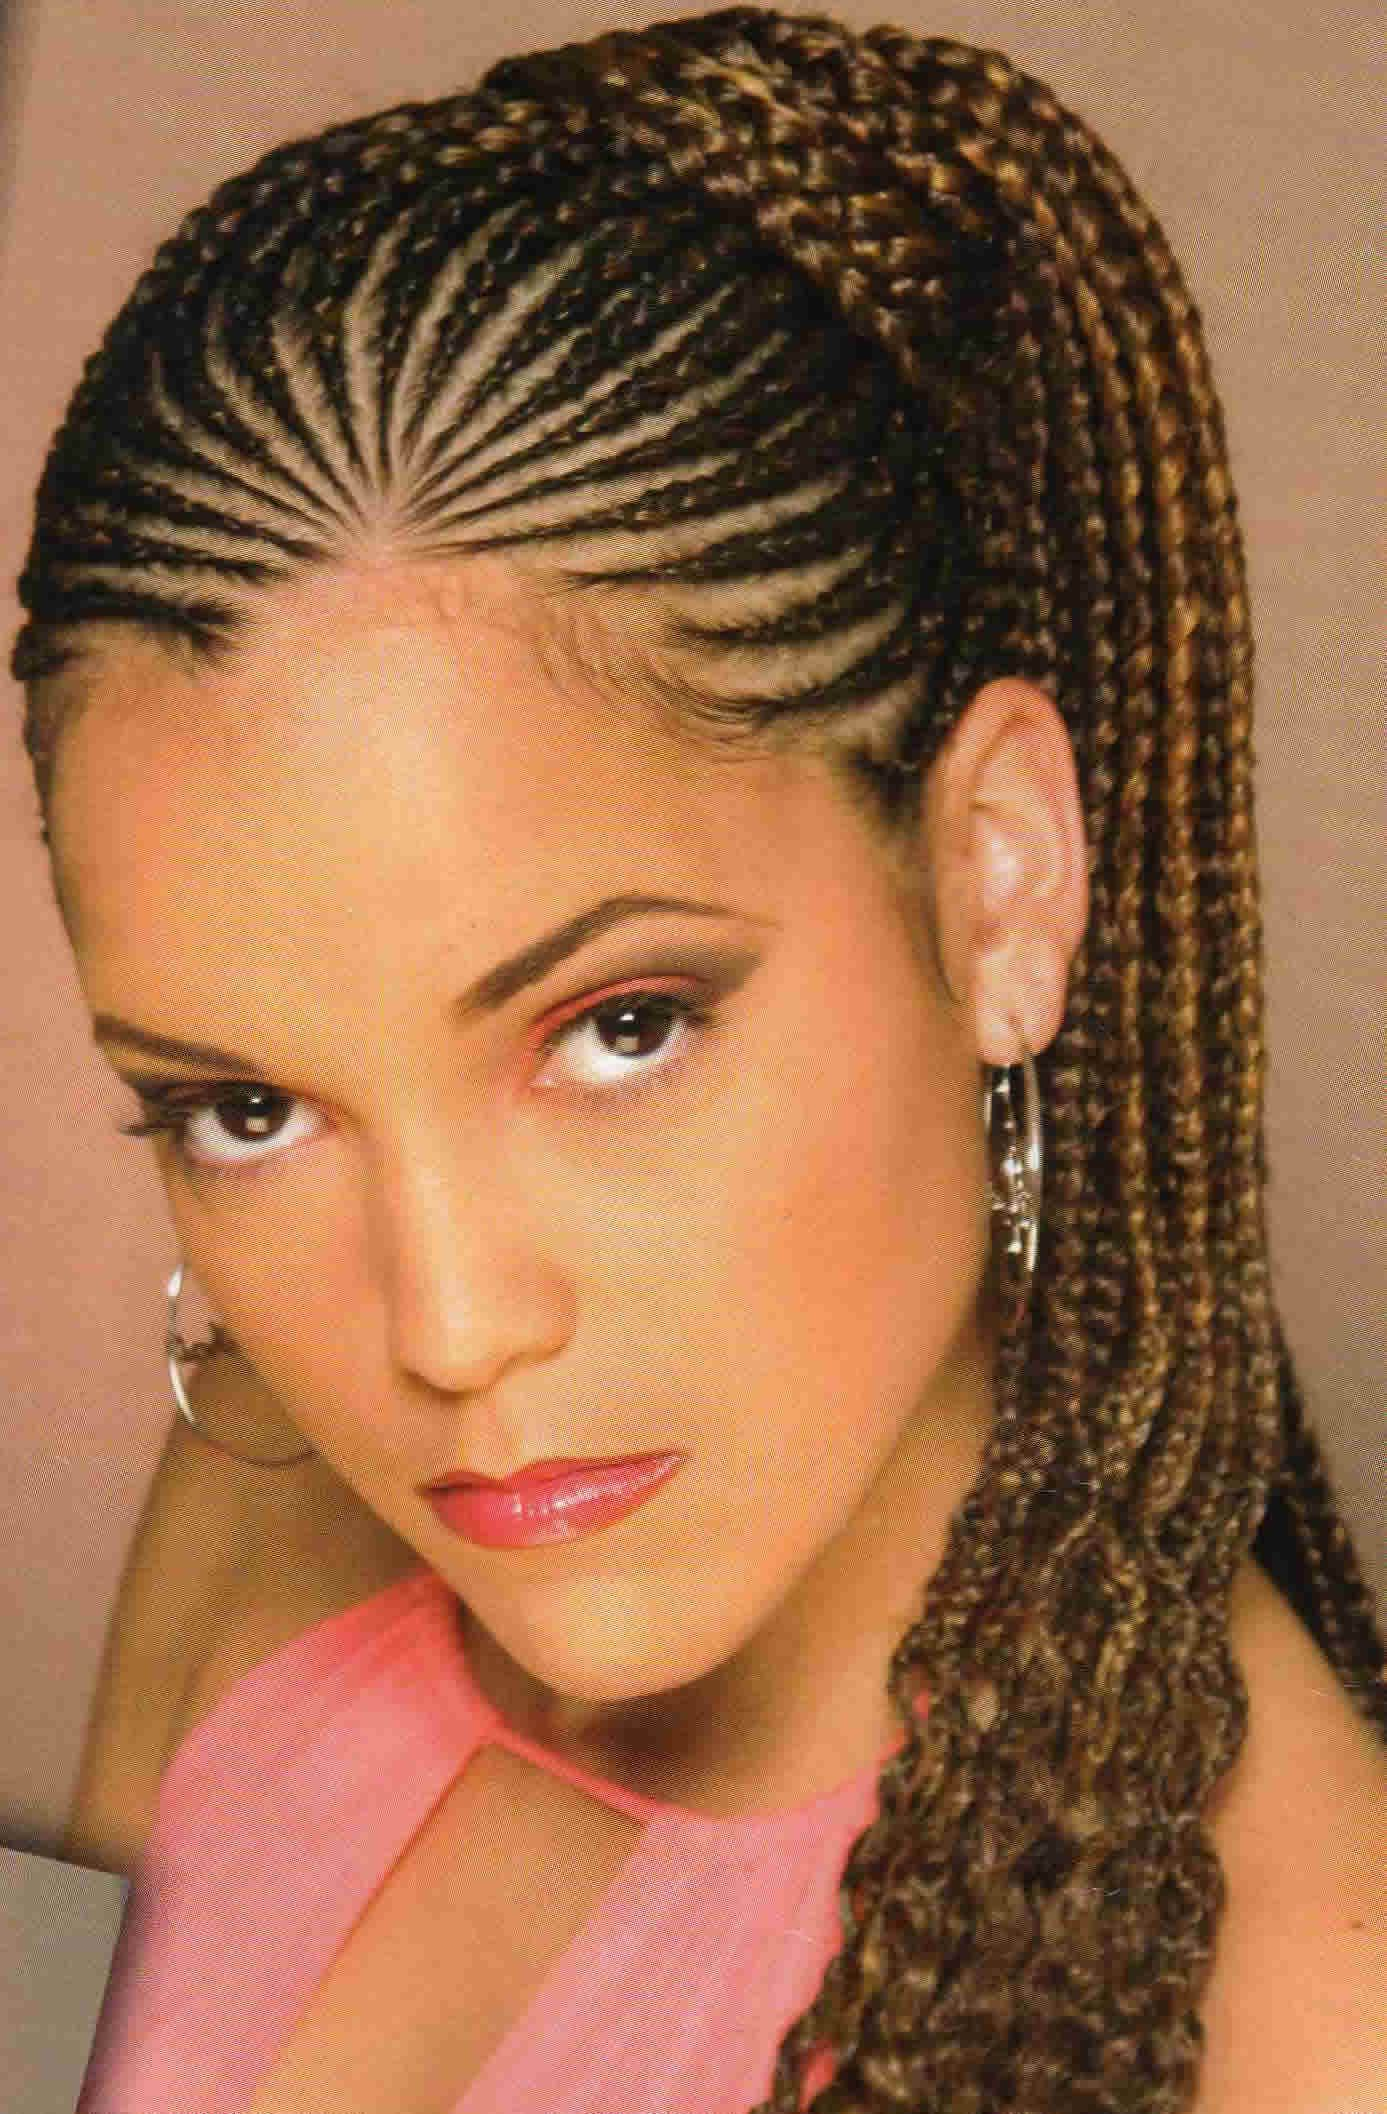 Hair Braiding Styles Guide For Black Women Cornrow Braid Styles Braided Hairstyles For Wedding Braids For Black Hair